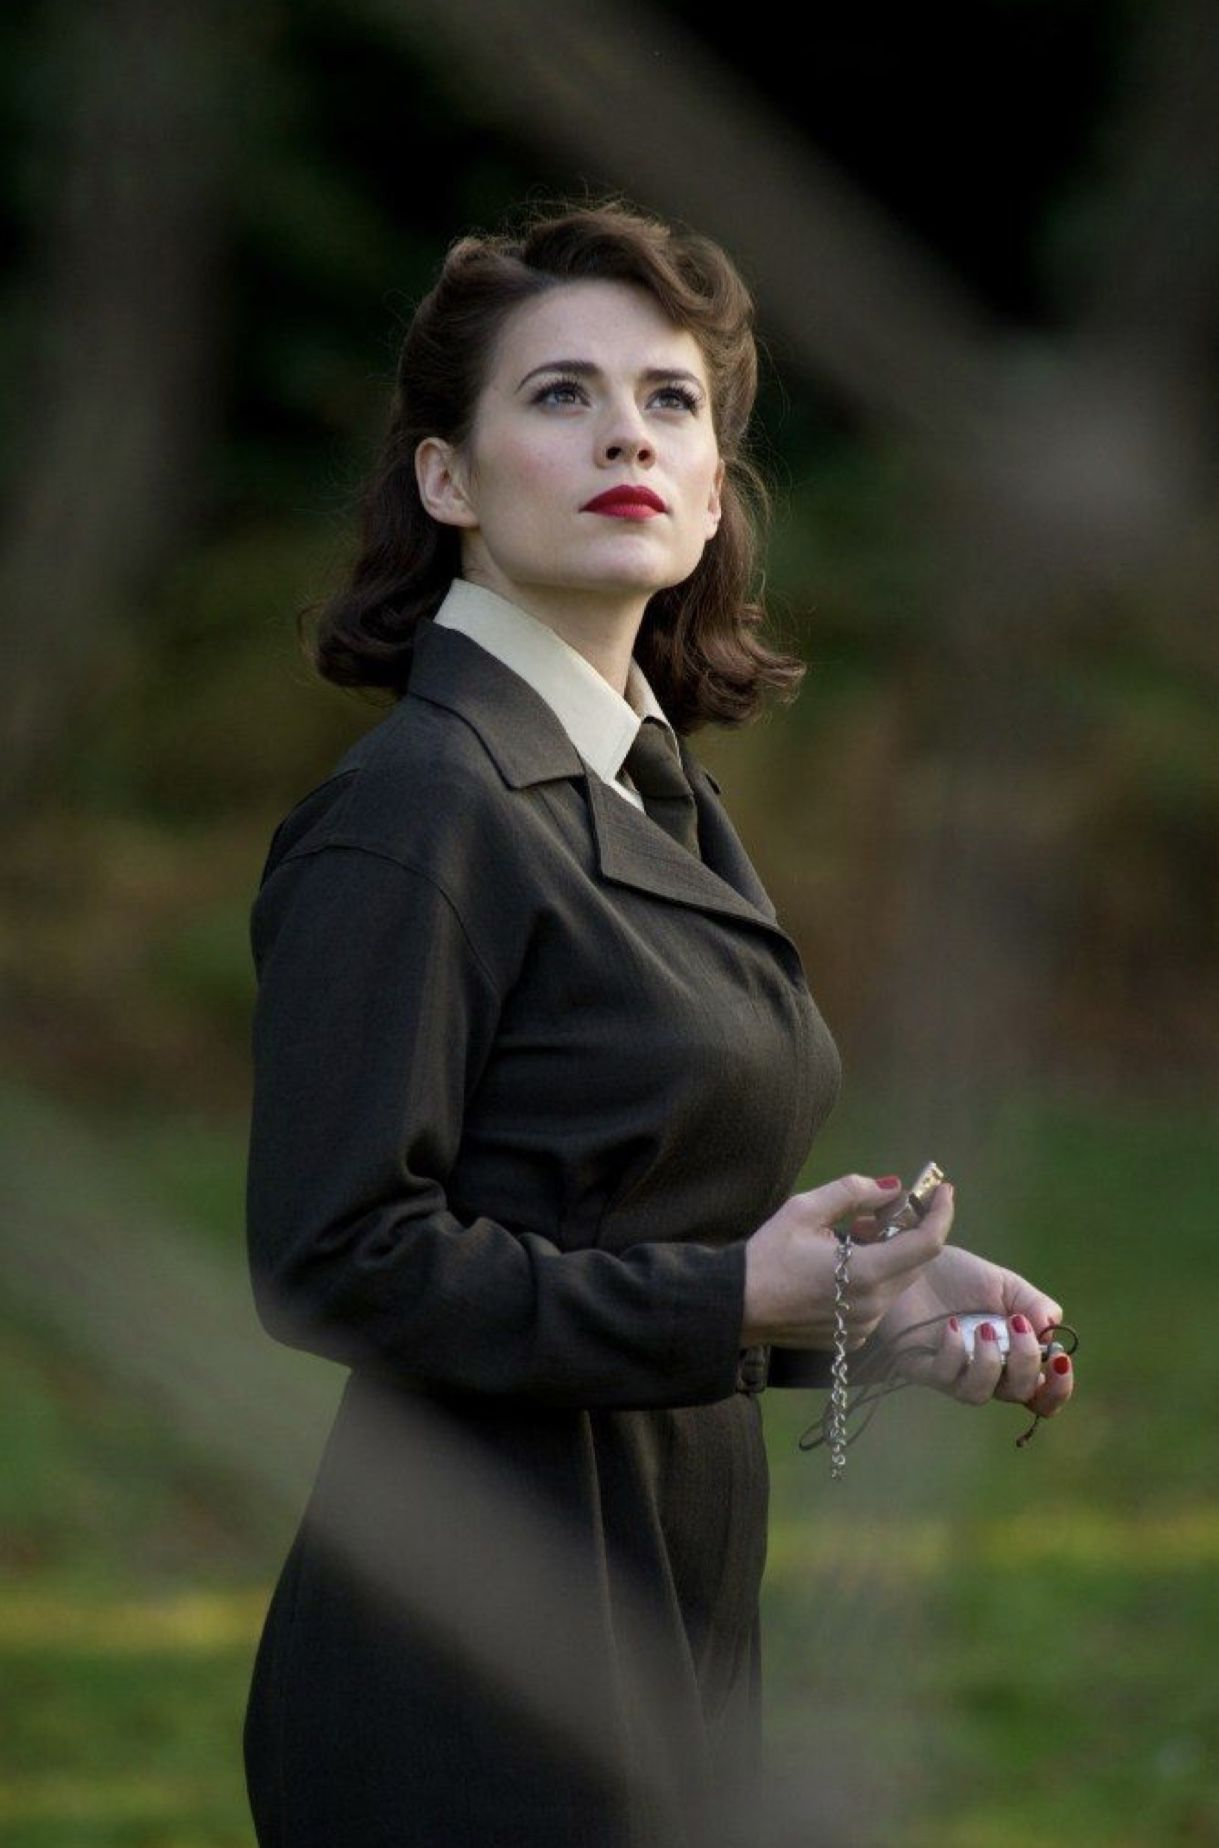 Hayley Atwell as Peggy Carter in a still from Captain America